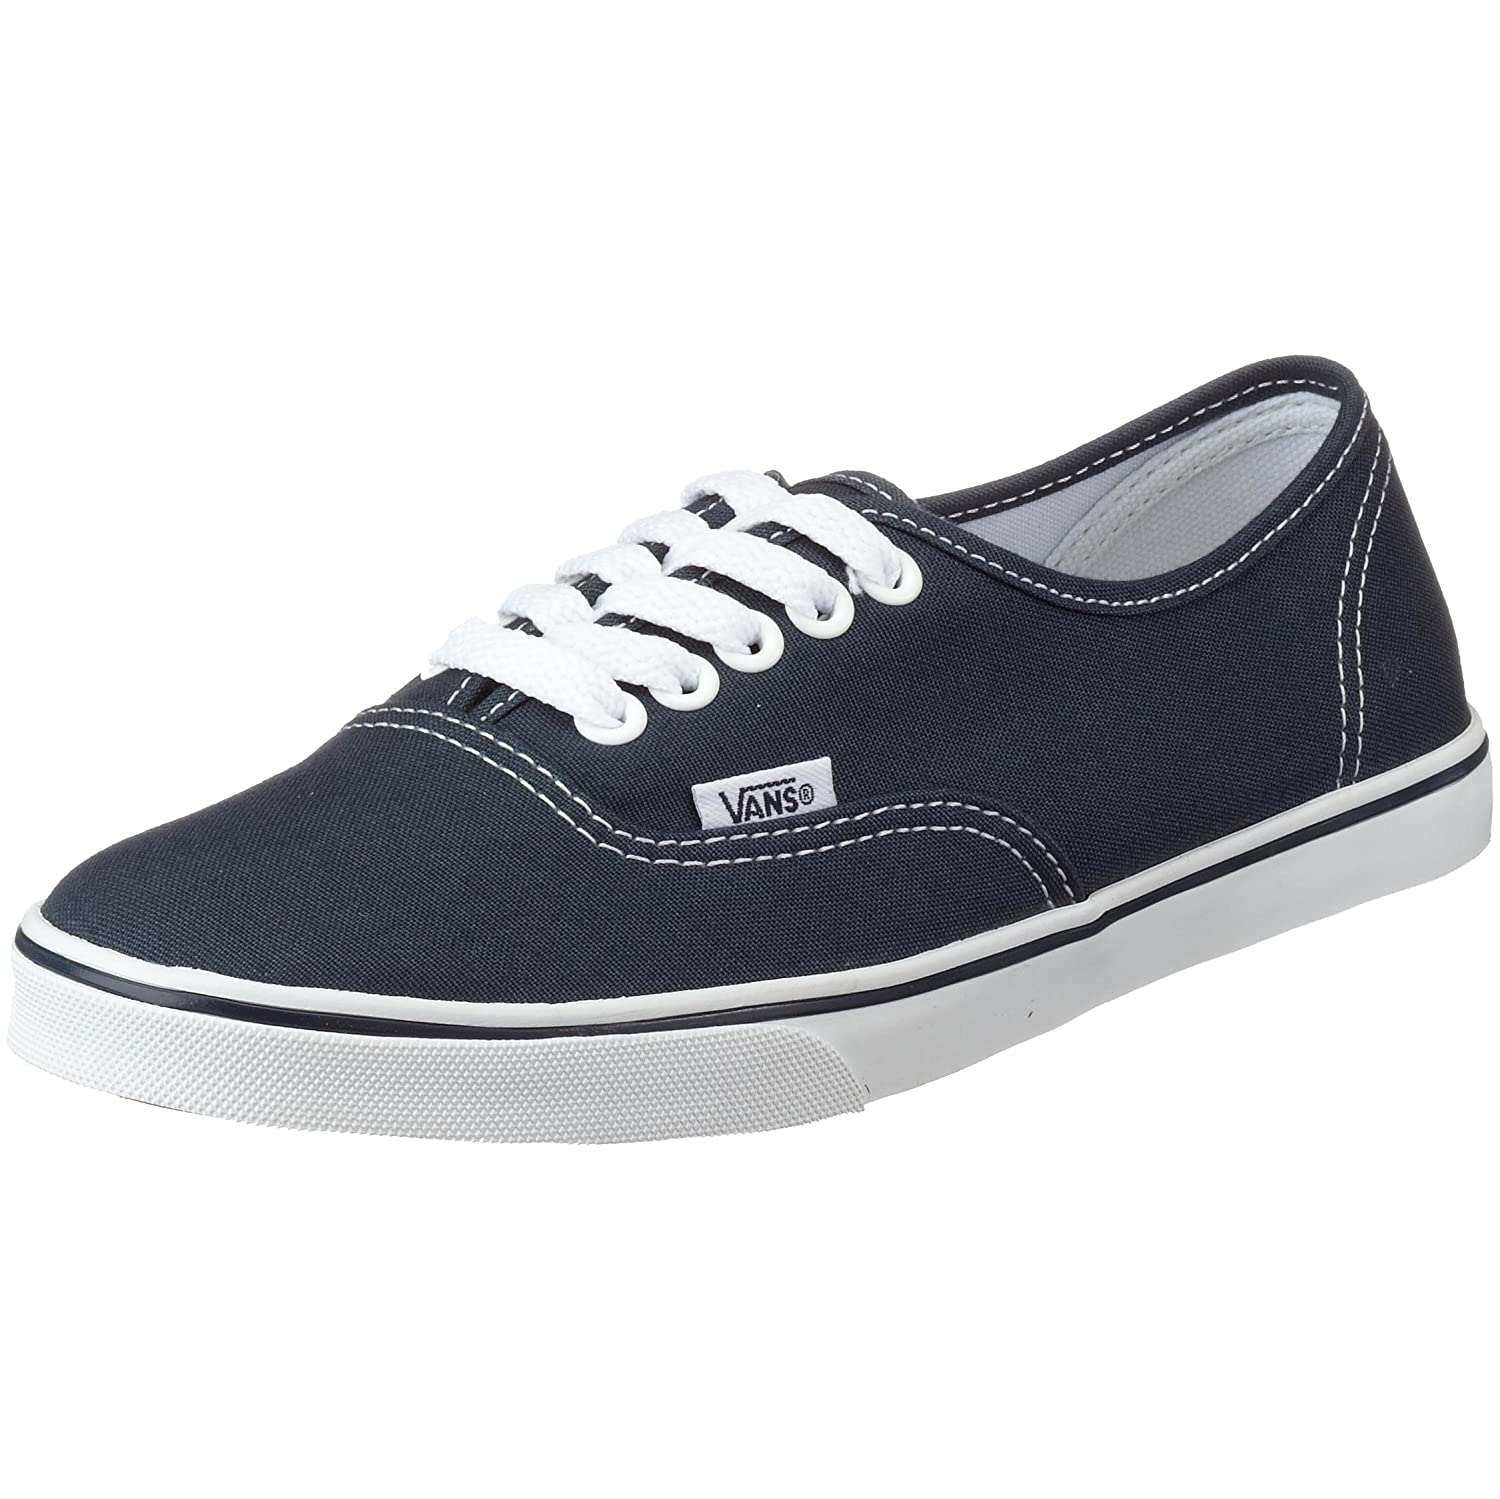 Vans Authentic B002OL395Q 6.5 M US Women / 5 M US Men|Navy/True White